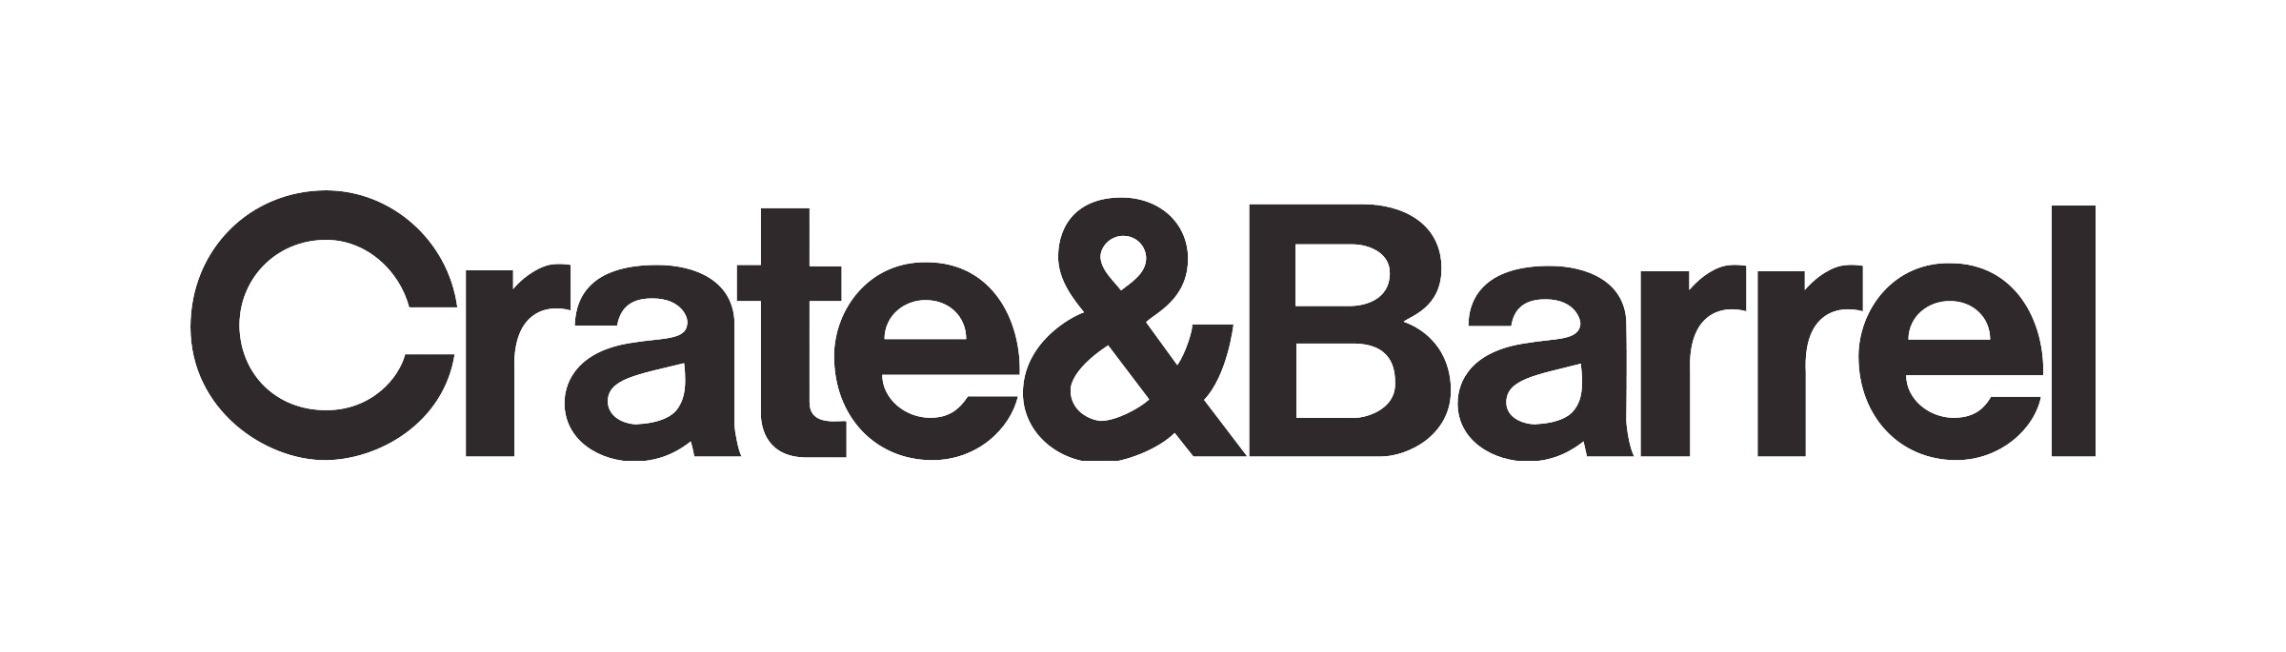 Crate & Barrel Discounts